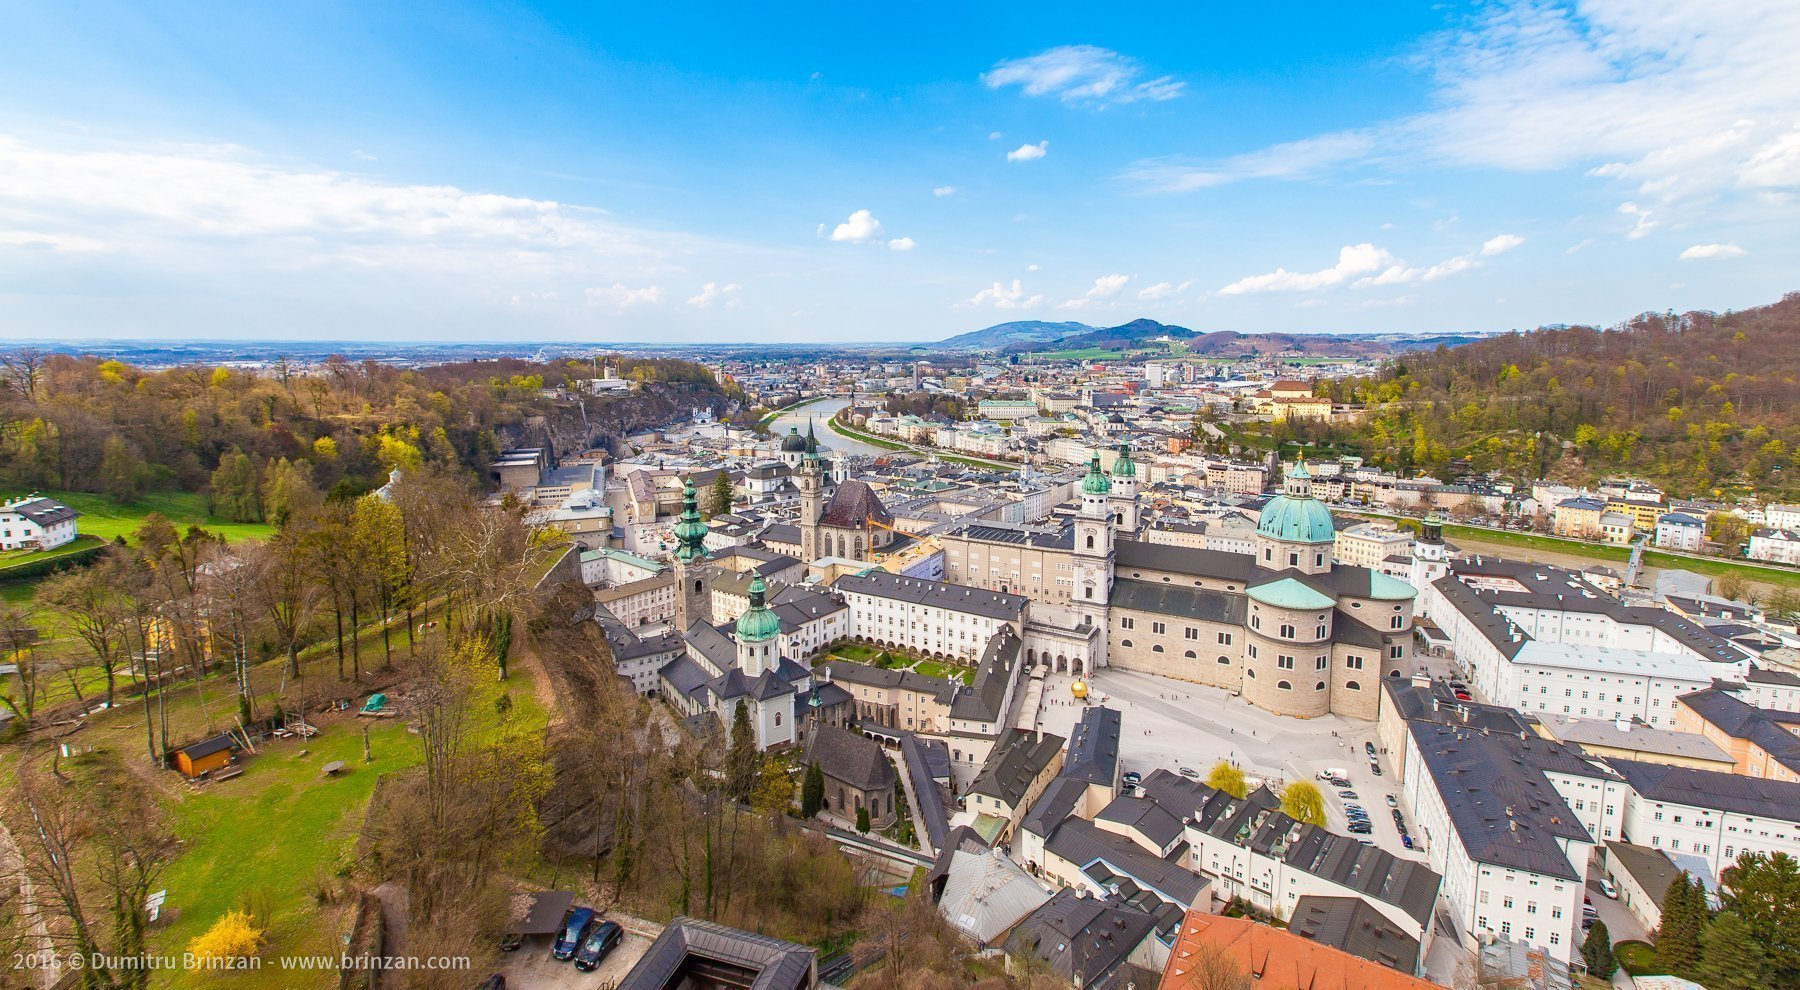 View from the top of Hohensalzburg Fortress